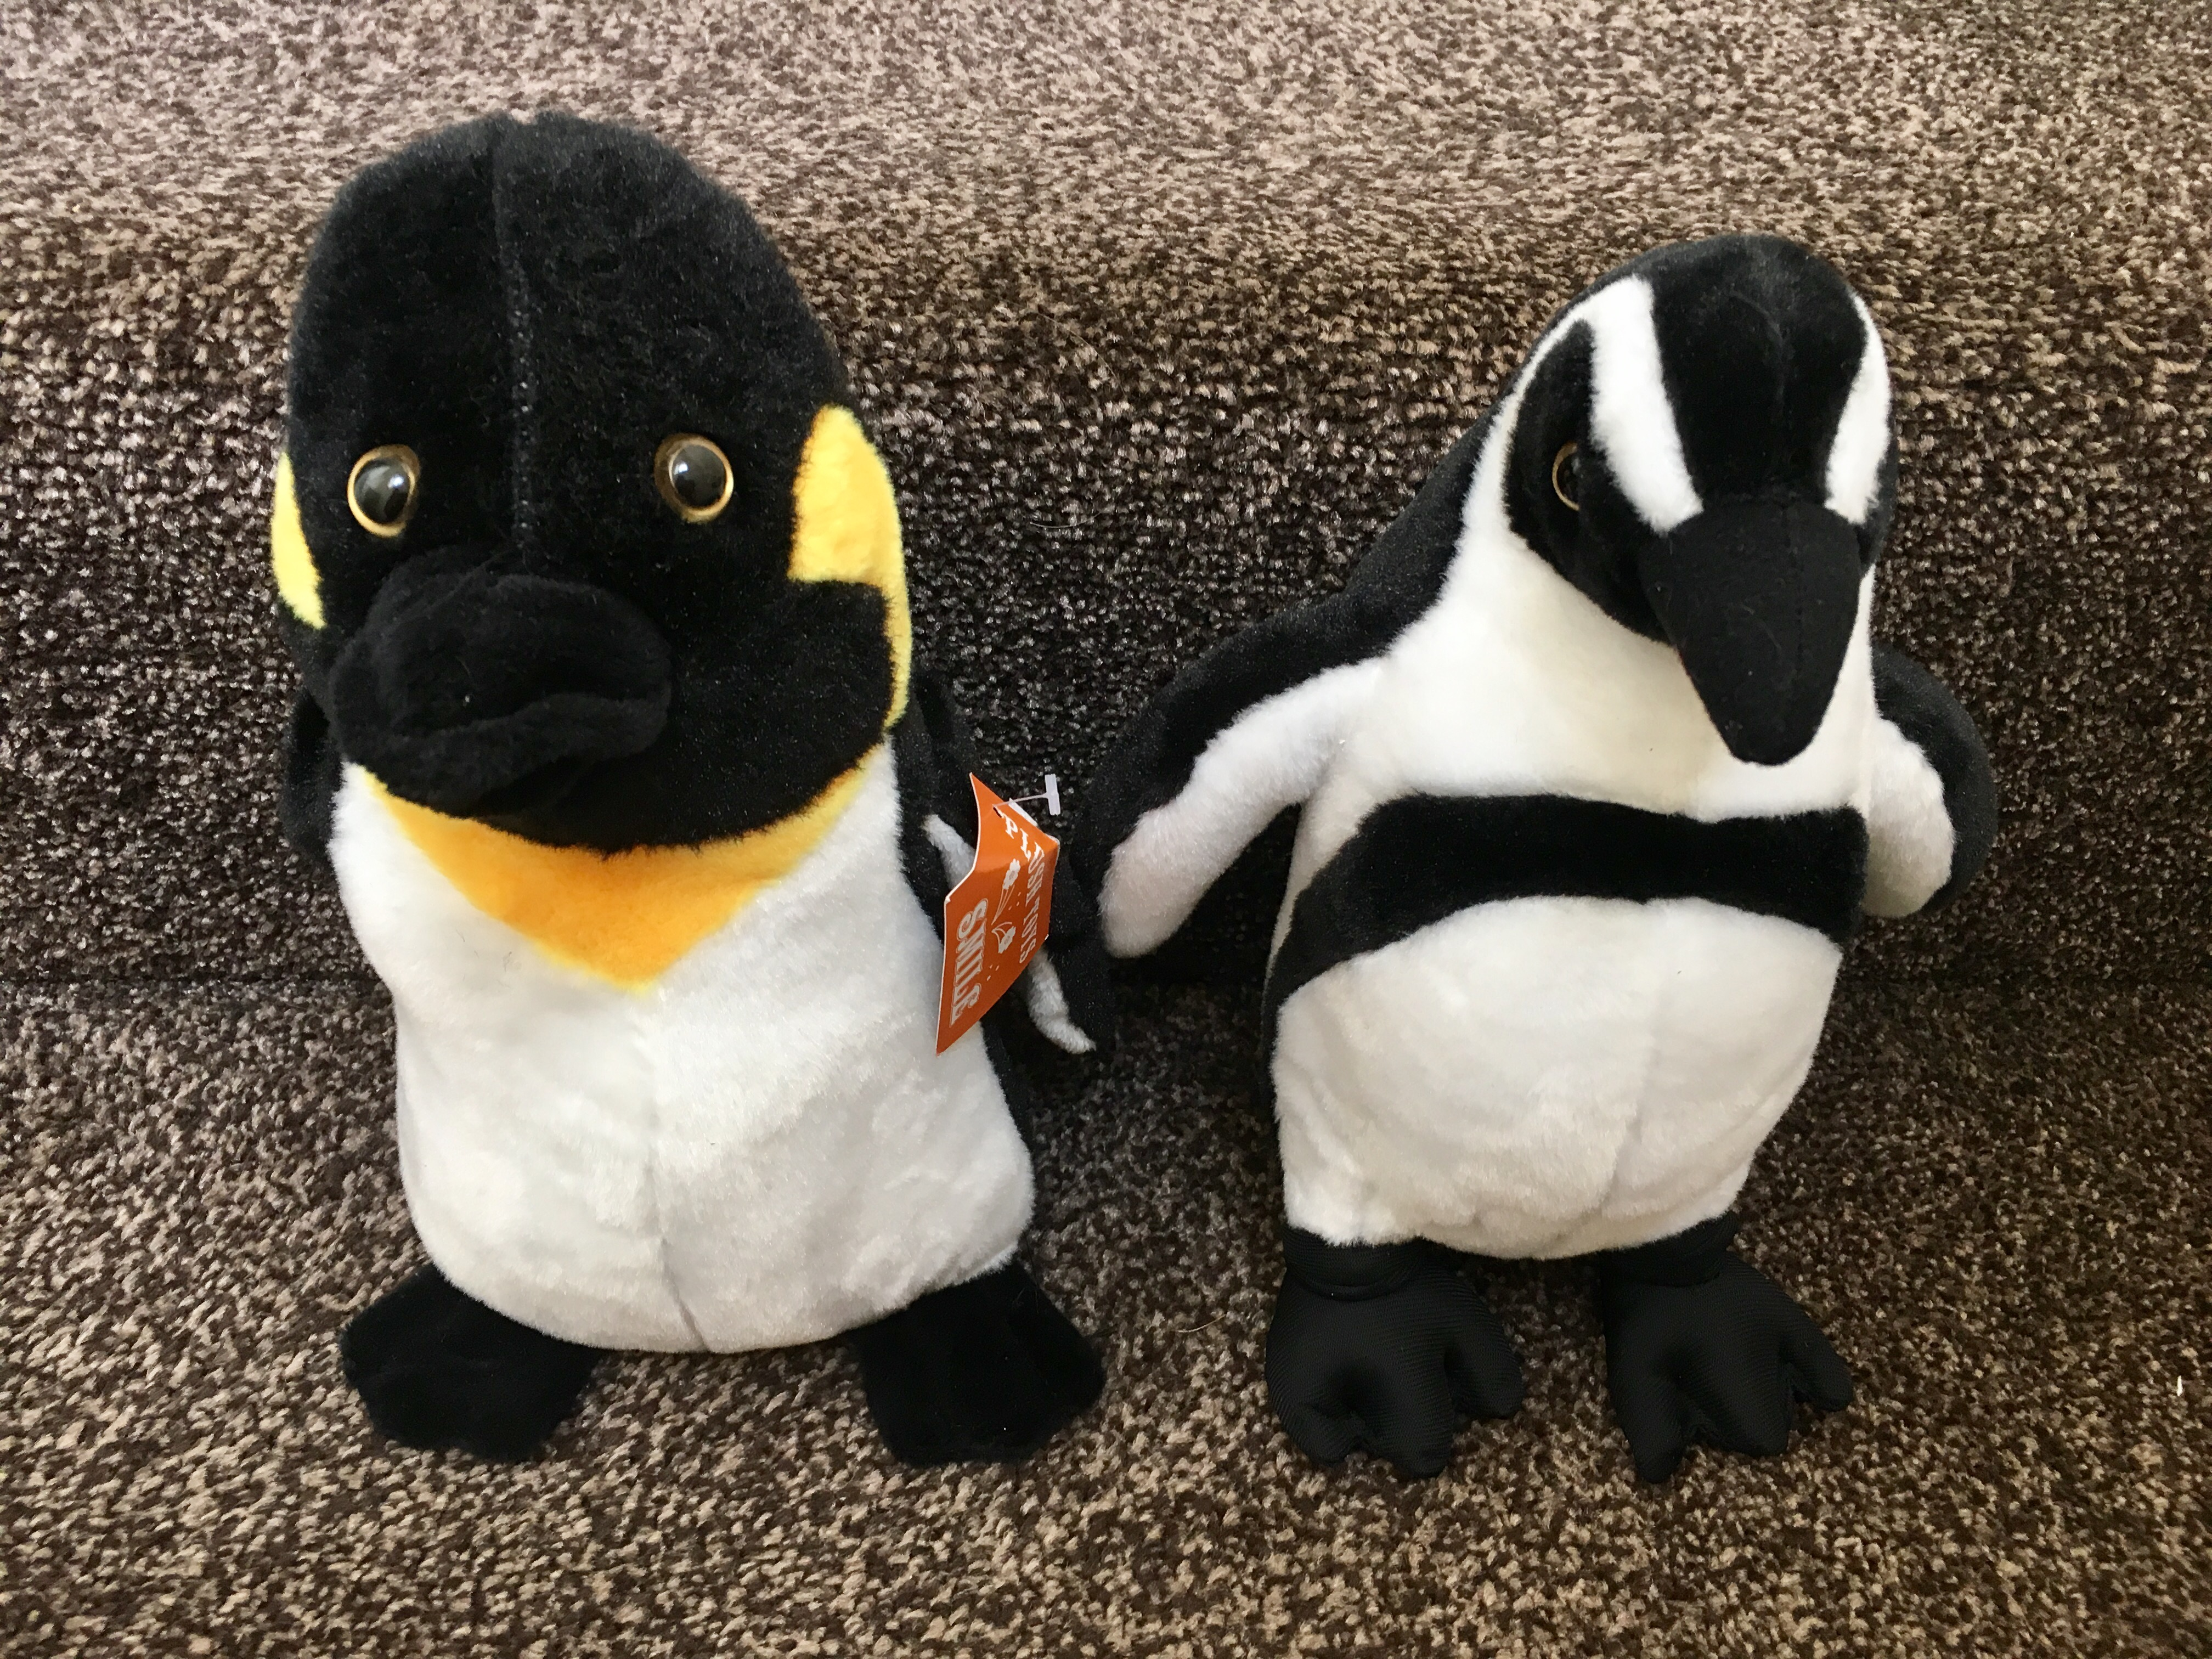 Cuddly plush penguins, sitting on my stairs